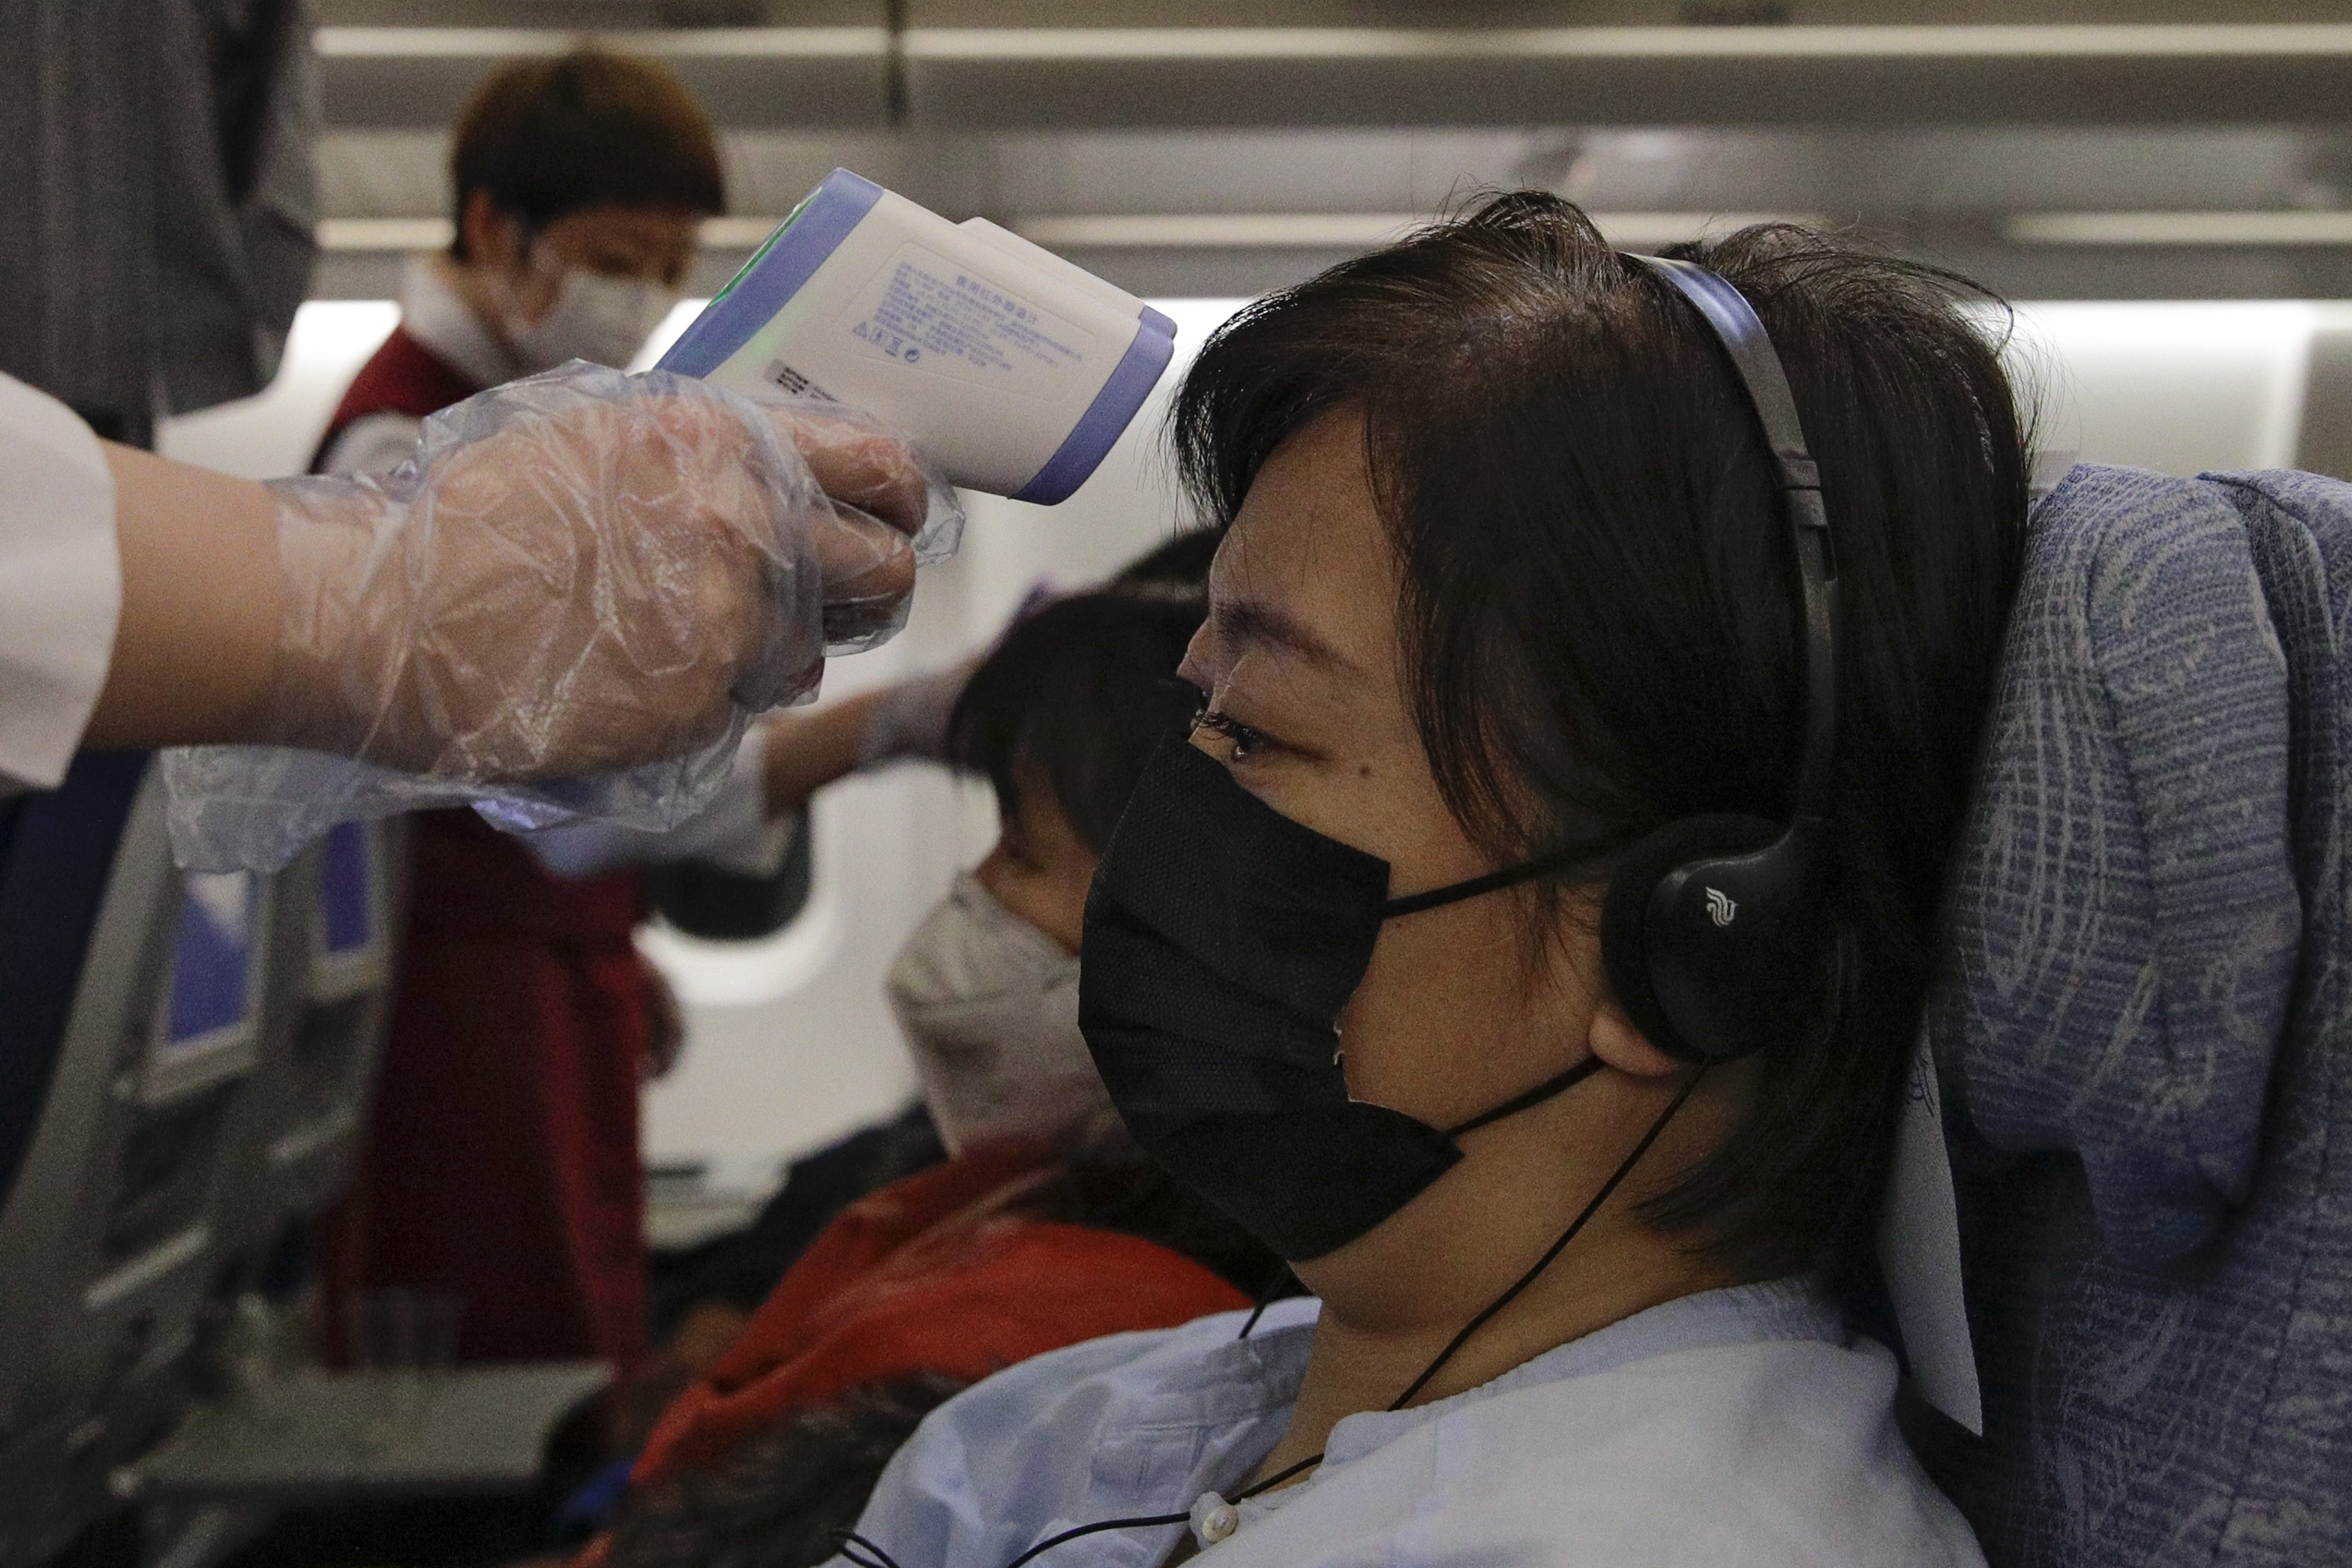 Flight attendants check temperatures of passengers aboard an Air China flight from Melbourne to Beijing on Feb. 4, 2020. AP Photo/Andy Wong